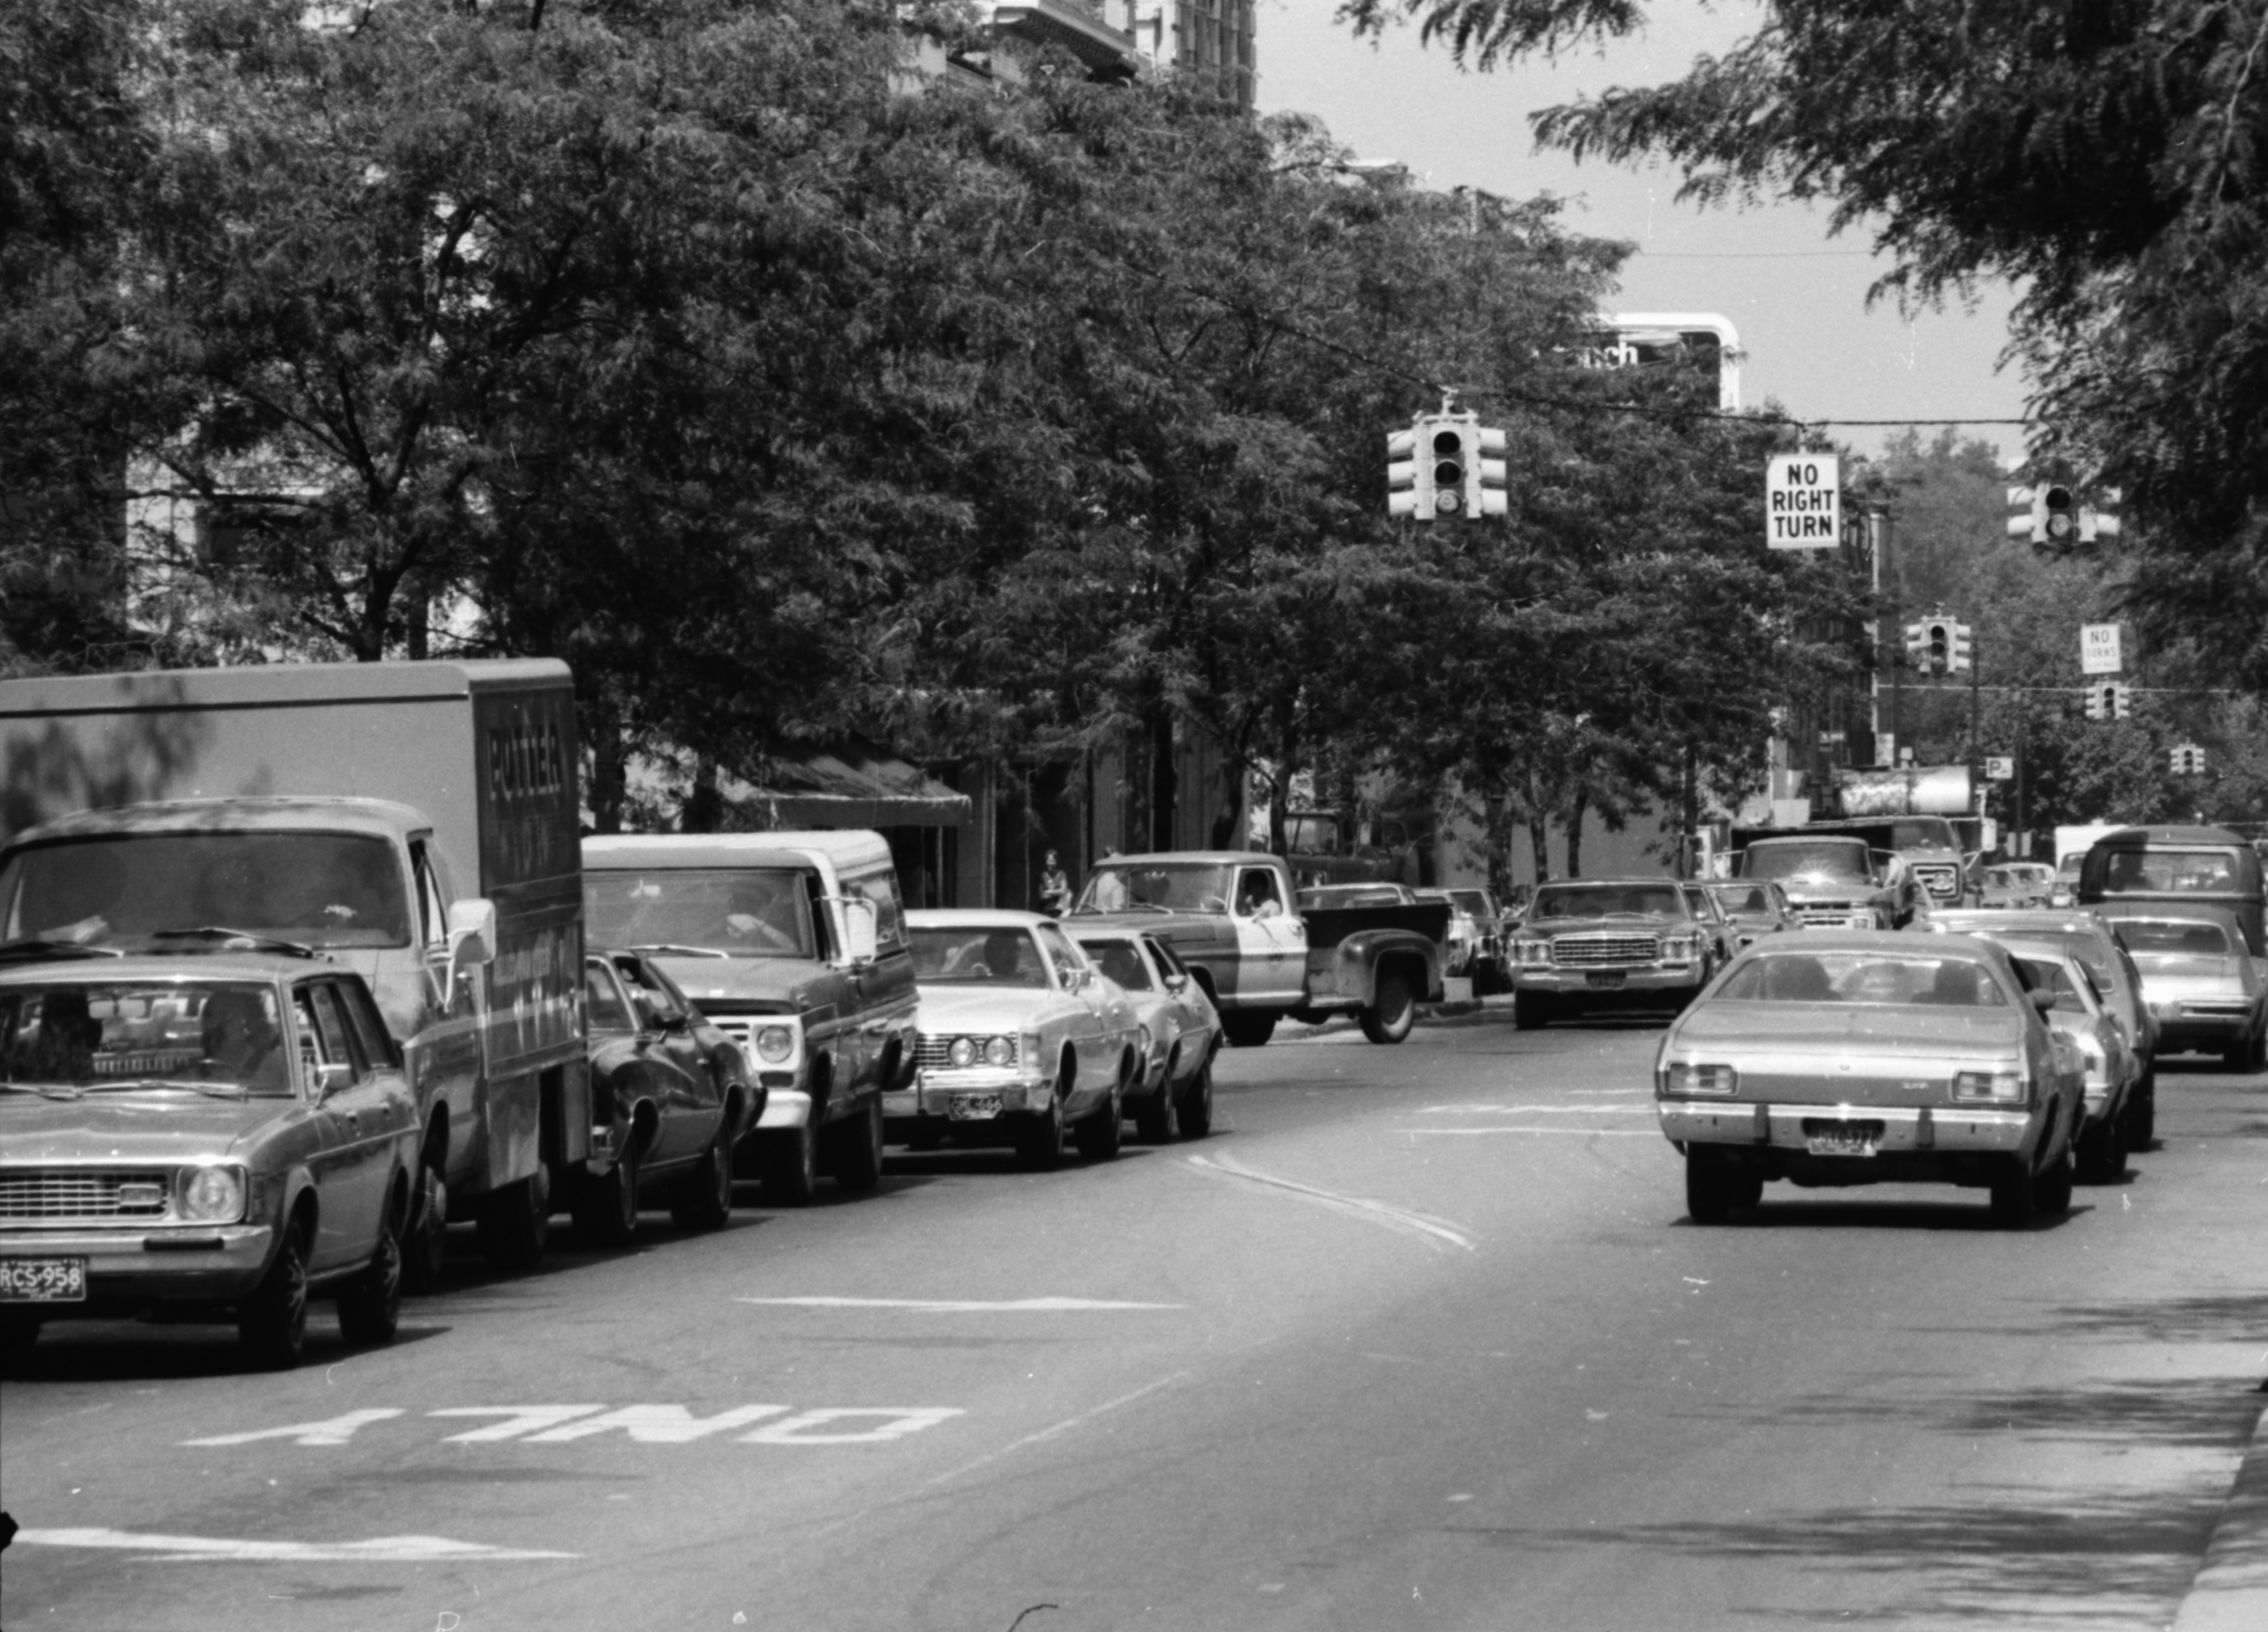 Backup on Main Street at corner of Liberty and Main, August 30, 1974 image